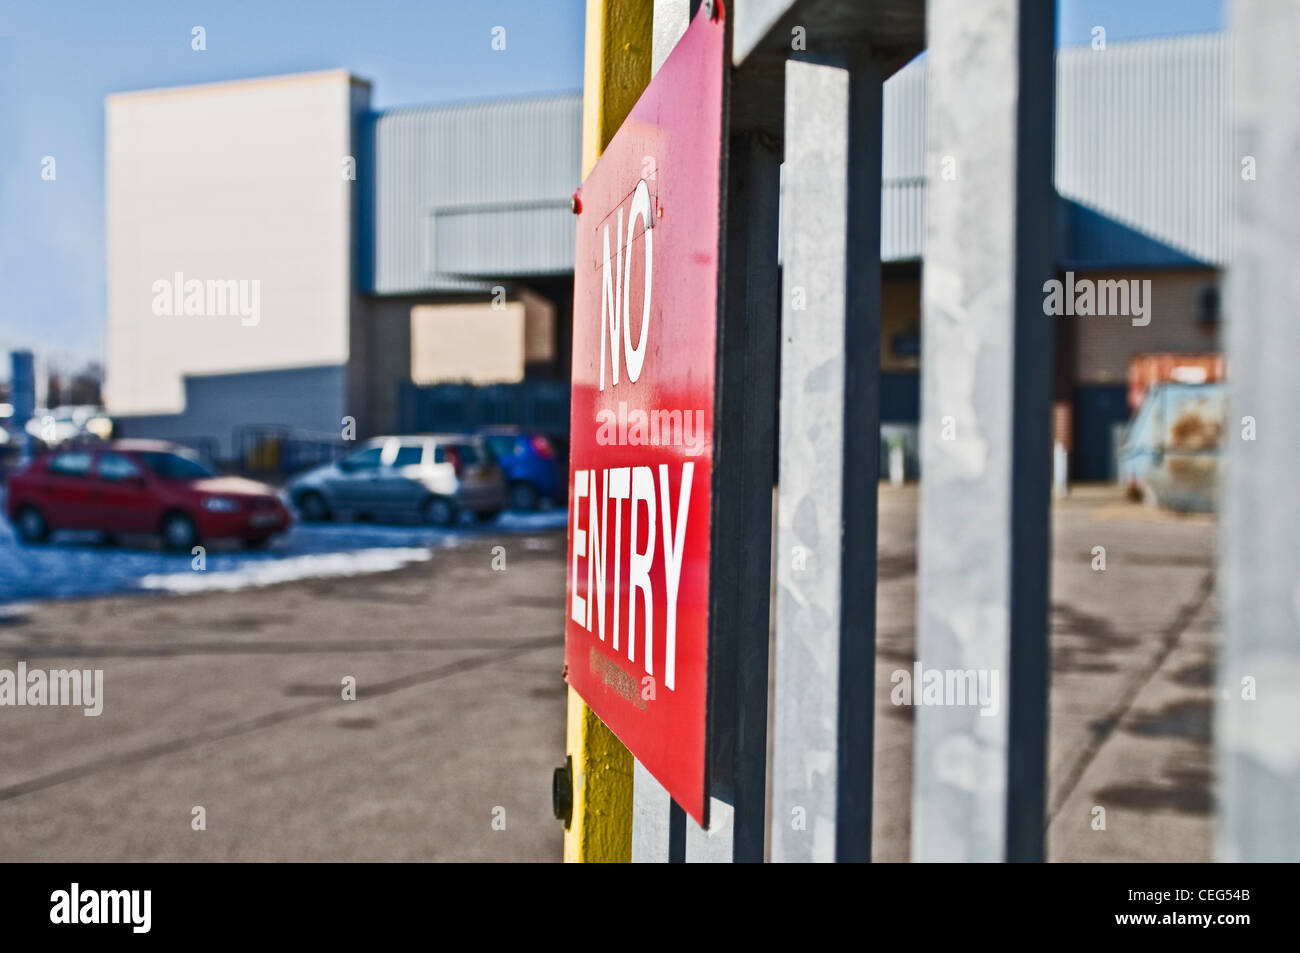 A 'No Entry' sign in a Lincoln retail park, UK - Stock Image